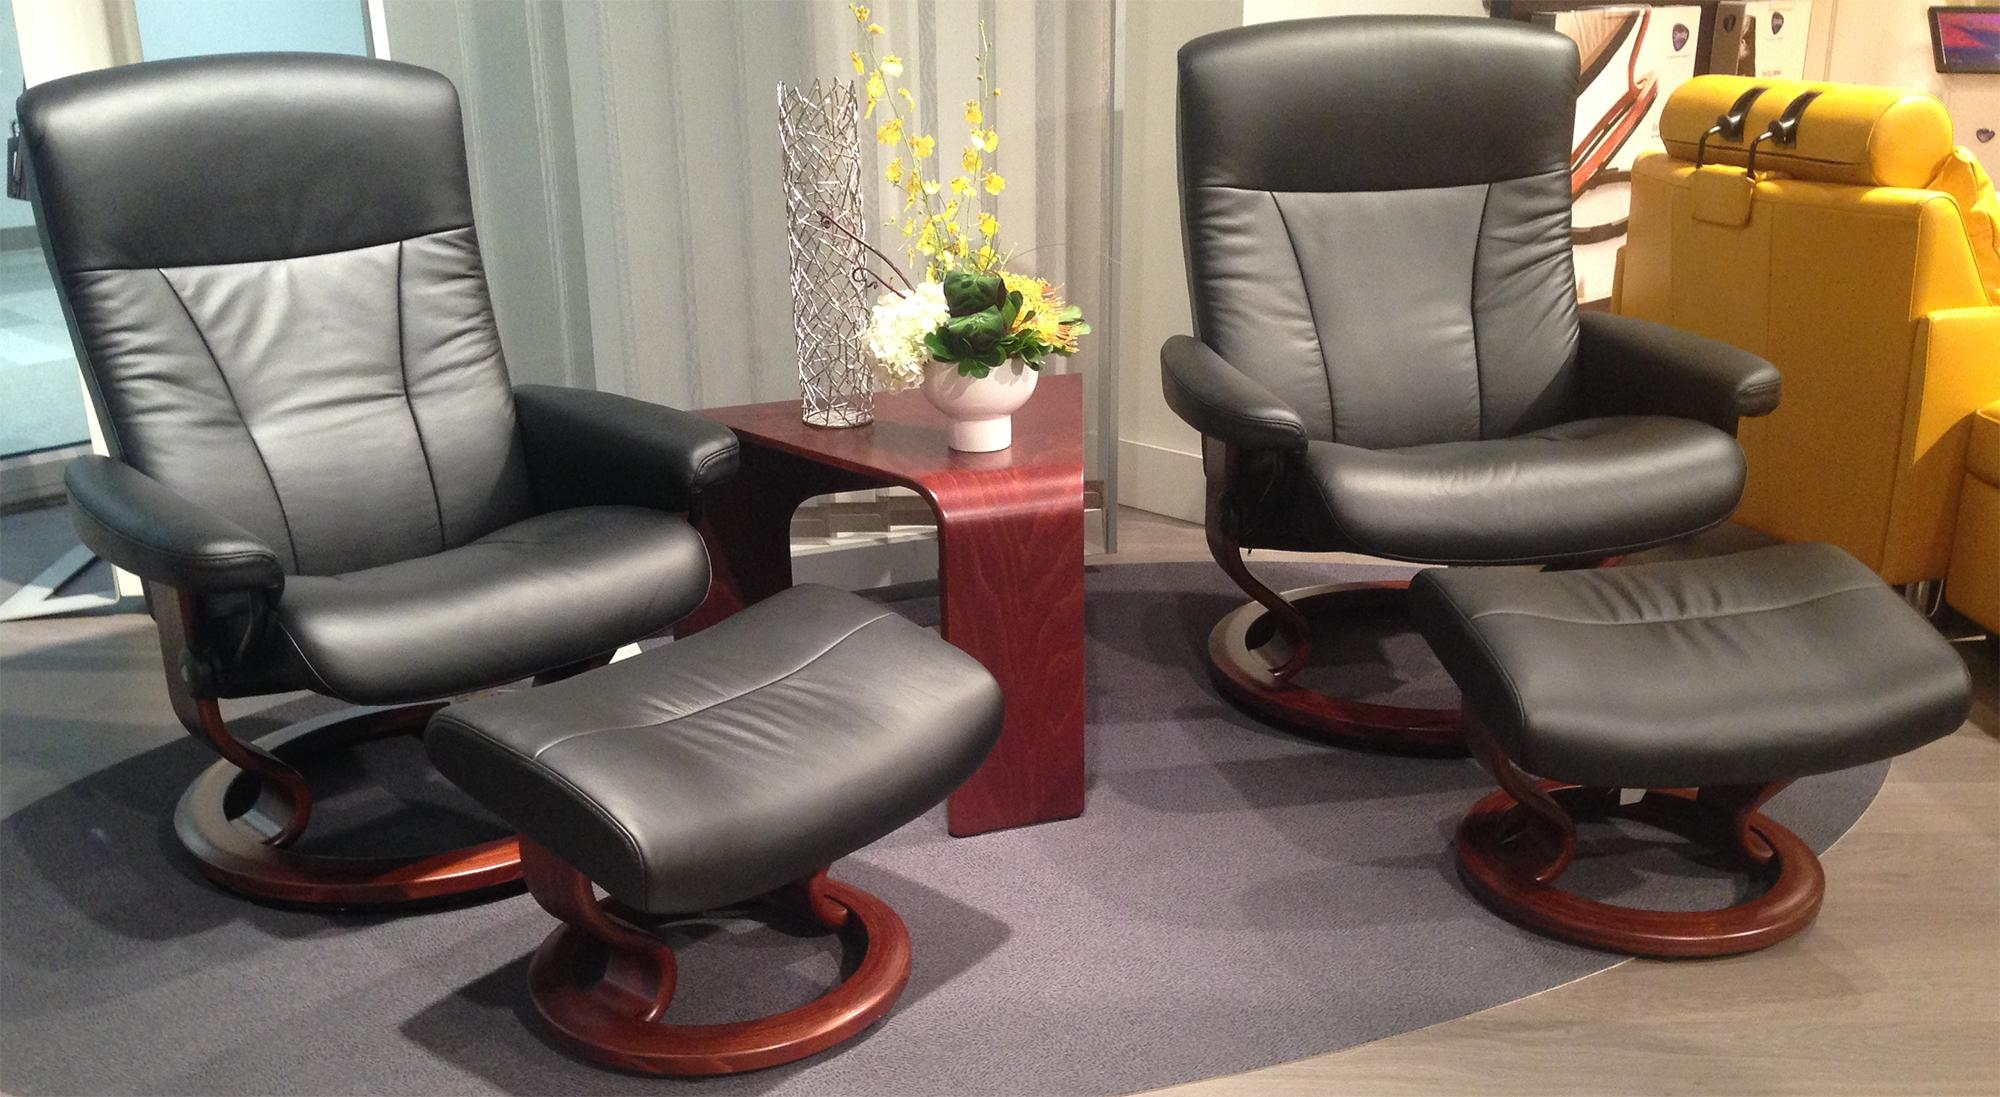 Ekornes Stressless President Large And Medium Recliner Chair Inside Ergonomic Sofas And Chairs (Image 8 of 20)